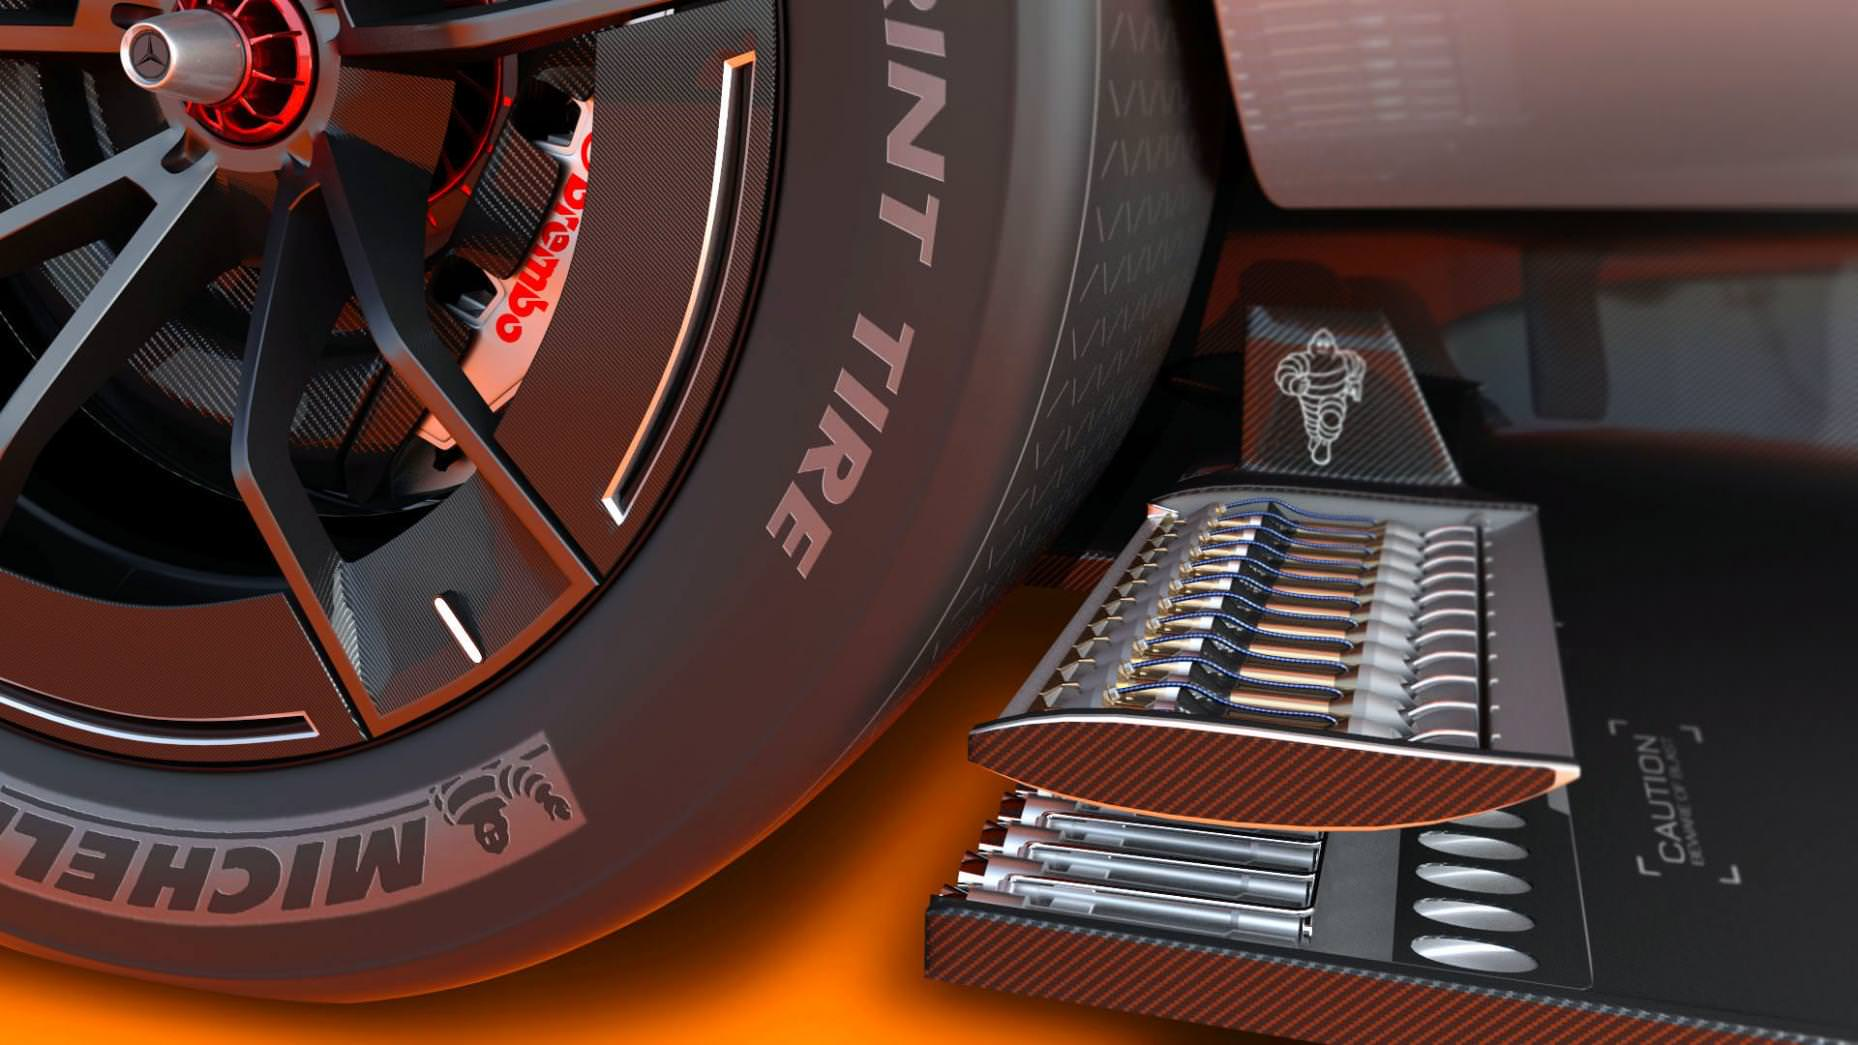 mercedes-benz-le-mans-concept-car-can-3d-print-tires-1